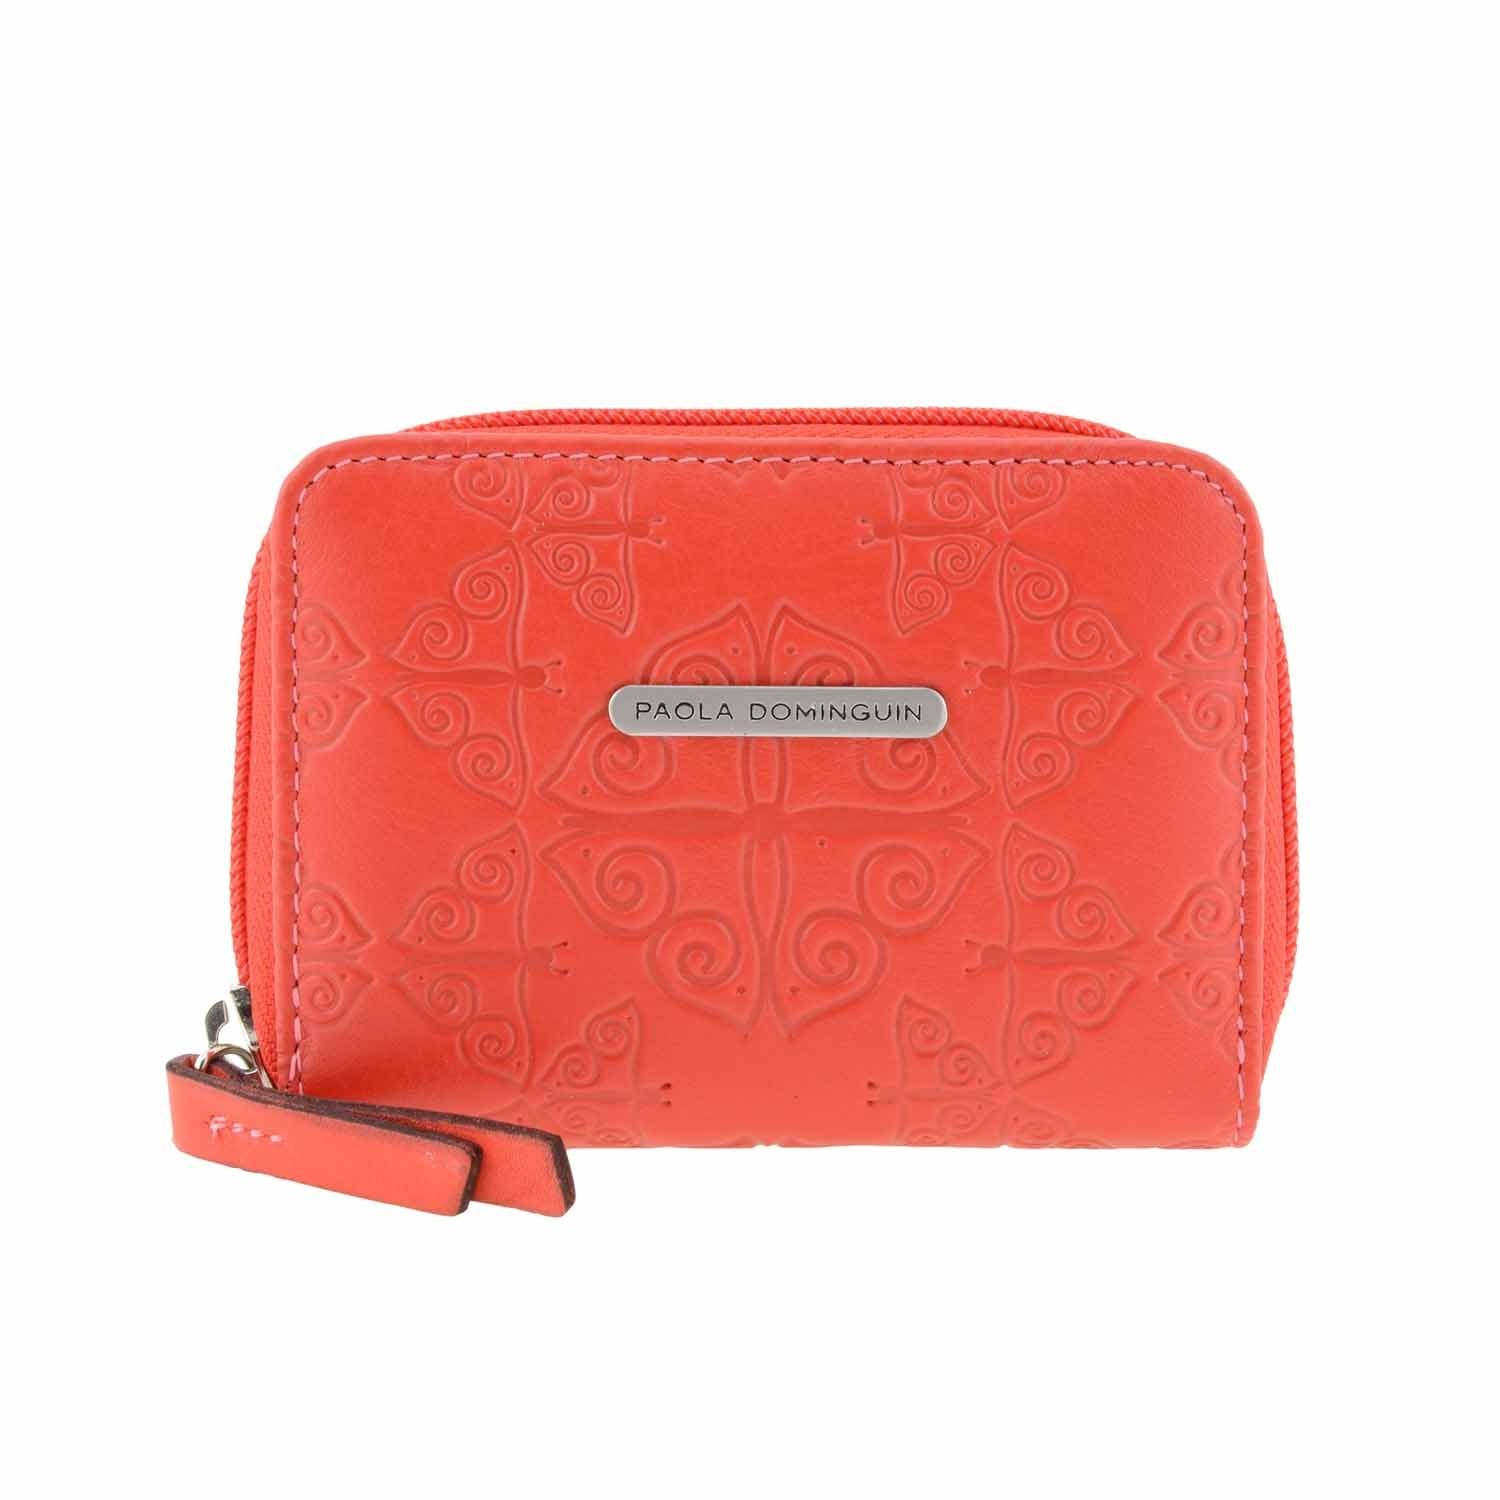 Monedero piel Mariposas de Paola Dominguin Talla: U Color: ROJO: Amazon.es: Ropa y accesorios